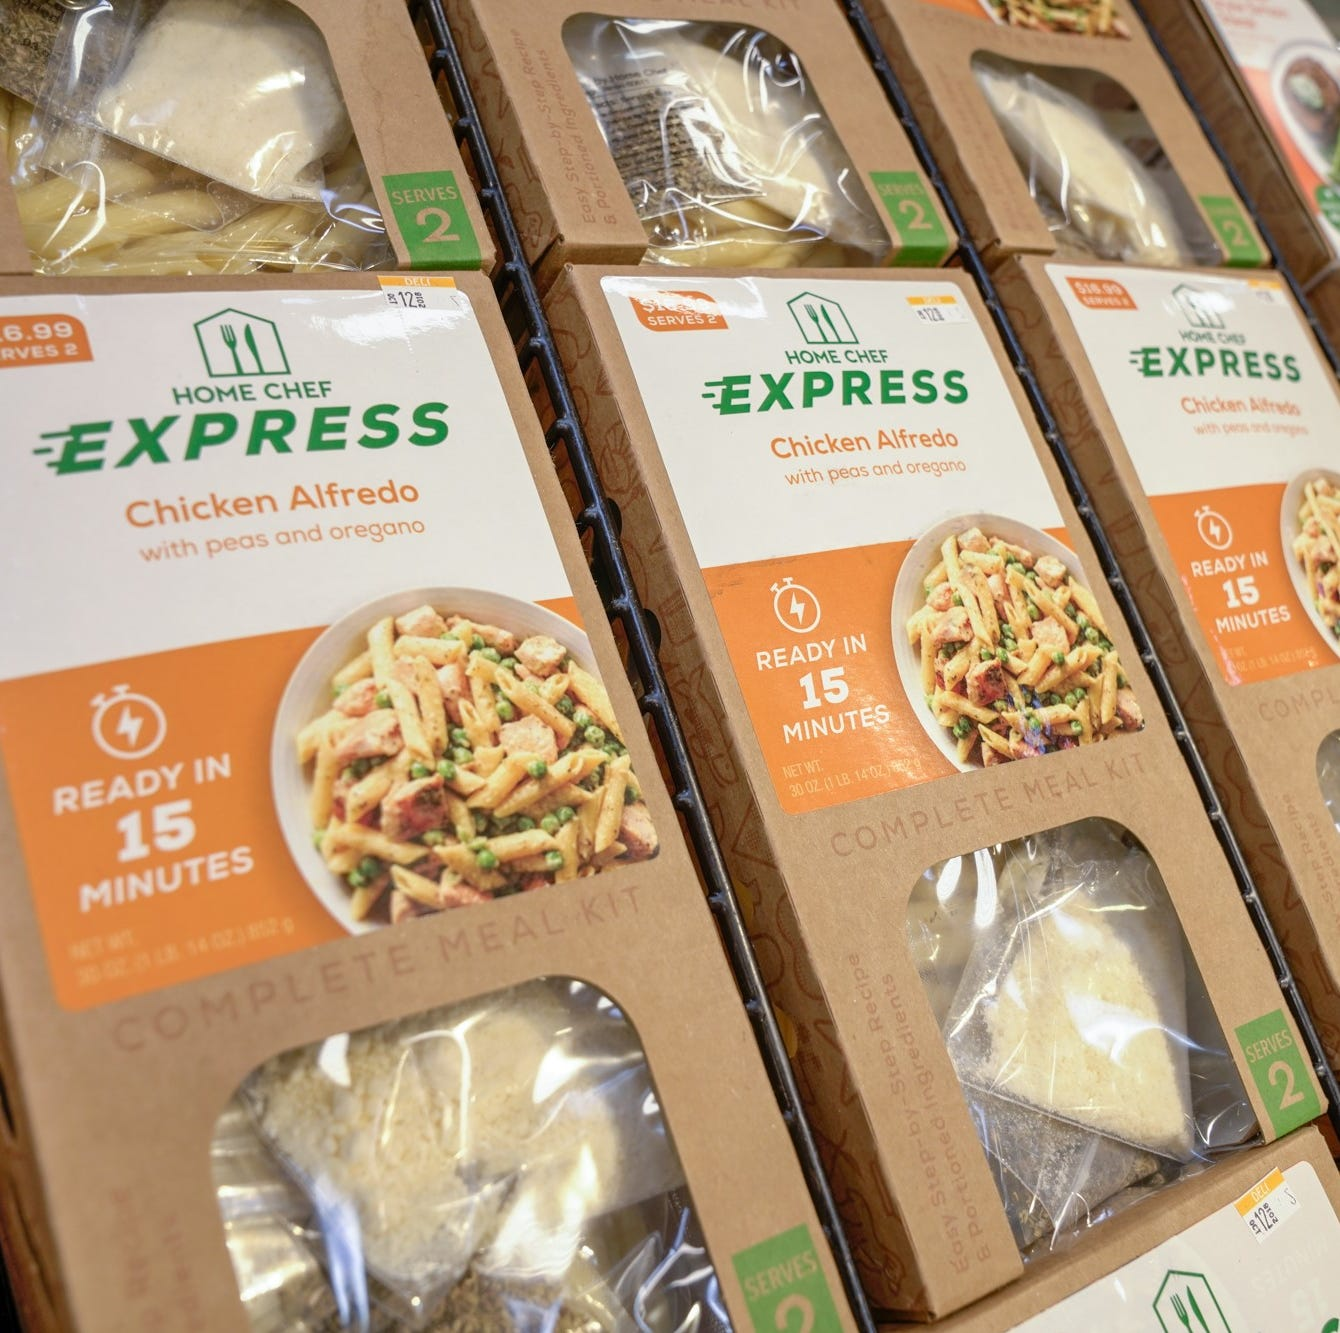 Home Chef: Kroger begins to roll out meal kits into supermarkets